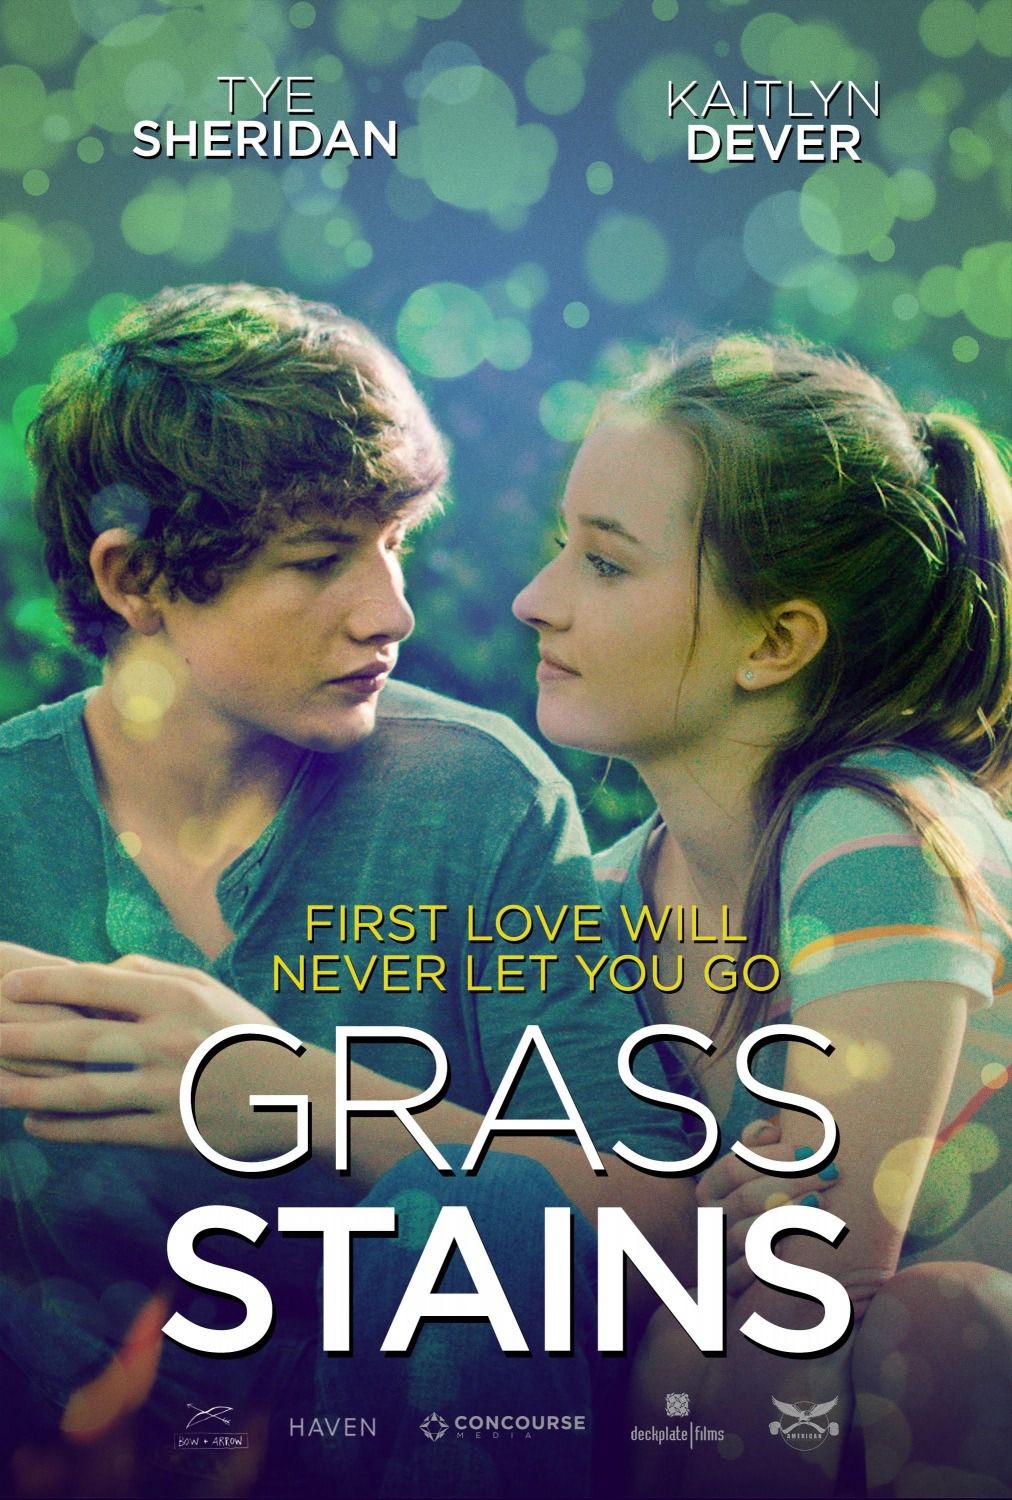 All Summers End - Grass Stains - first Love will never let you go - Cast: Tye Sheridan, Kaitlyn Dever, Annabeth Gish, Ryan Lee - love story film poster